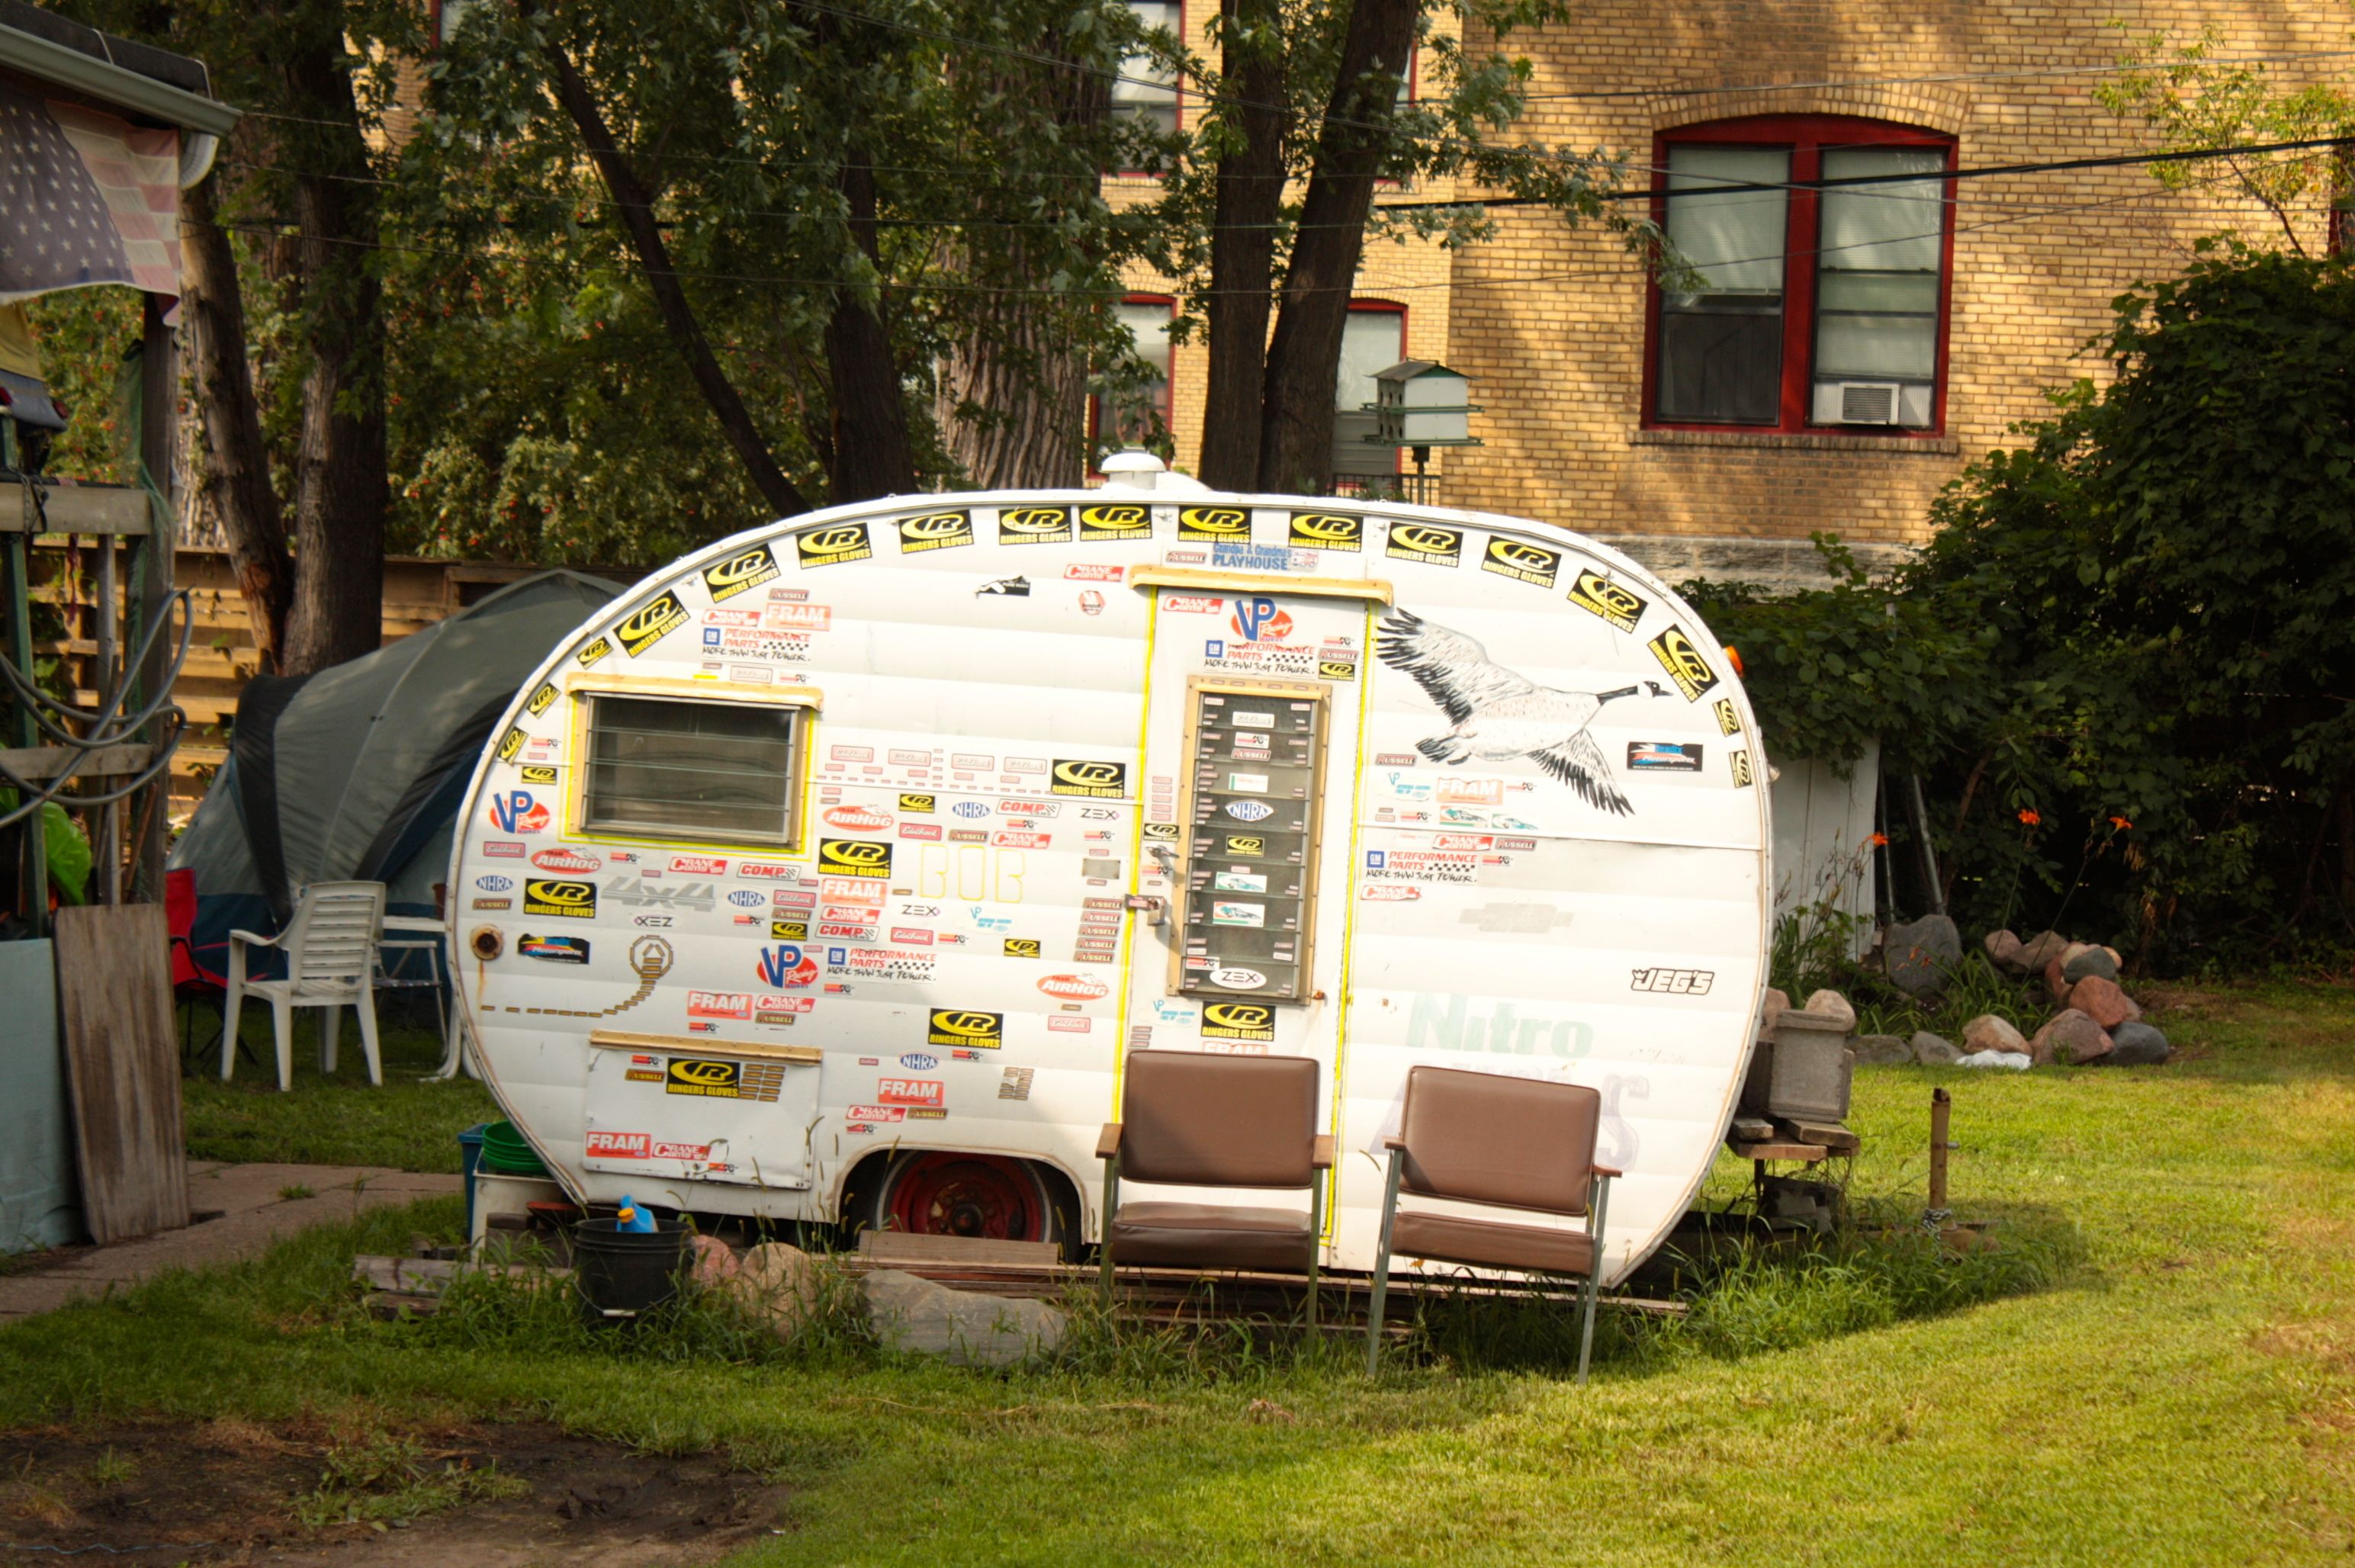 The sticker-covered trailer and two 1970s-era chairs create the perfect atmosphere for relaxing outside.